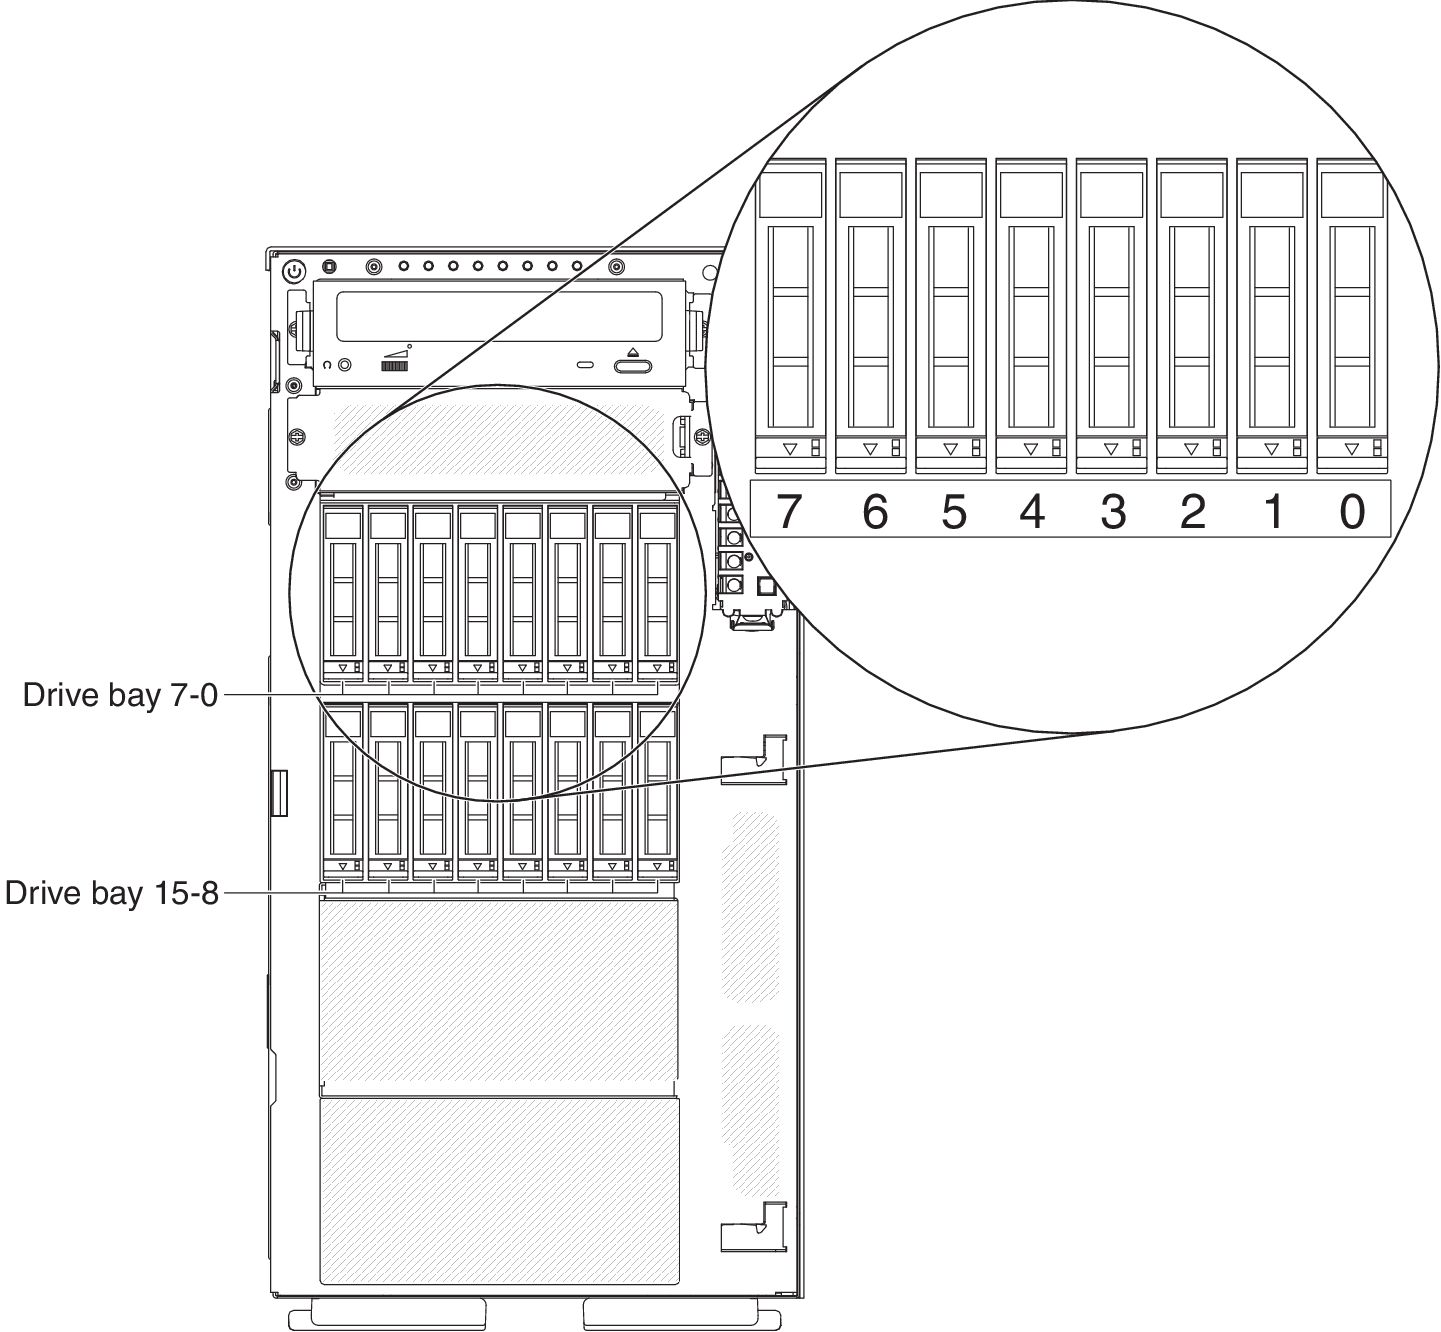 Hard Disk Drive Installation Lenovo System X3500 M4 Diagram Mounting Server With Sixteen 25 Inch Drives